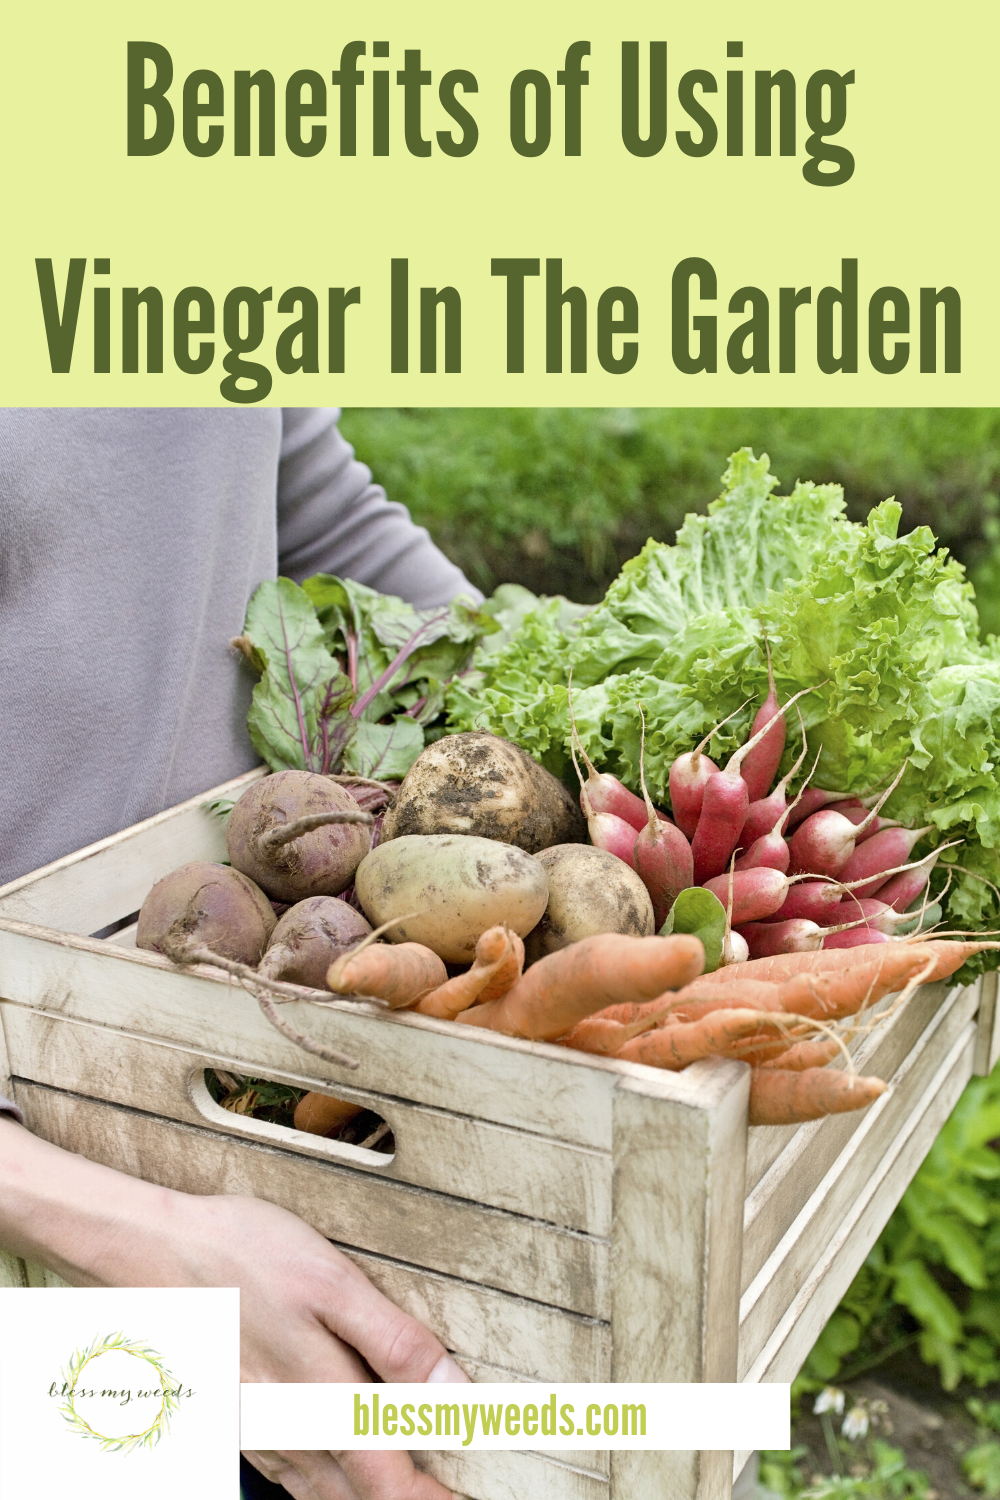 Professional gardeners know the benefits of using vinegar in the garden. Not only do they know this, they actually use it. While you thought vinegar was just for inside the house, this article will teach you why you should consider it for the garden as well. Keep reading to learn about all the things that vinegar can do to save your garden. #homemadepesticides #DIYweedkiller #vinegar